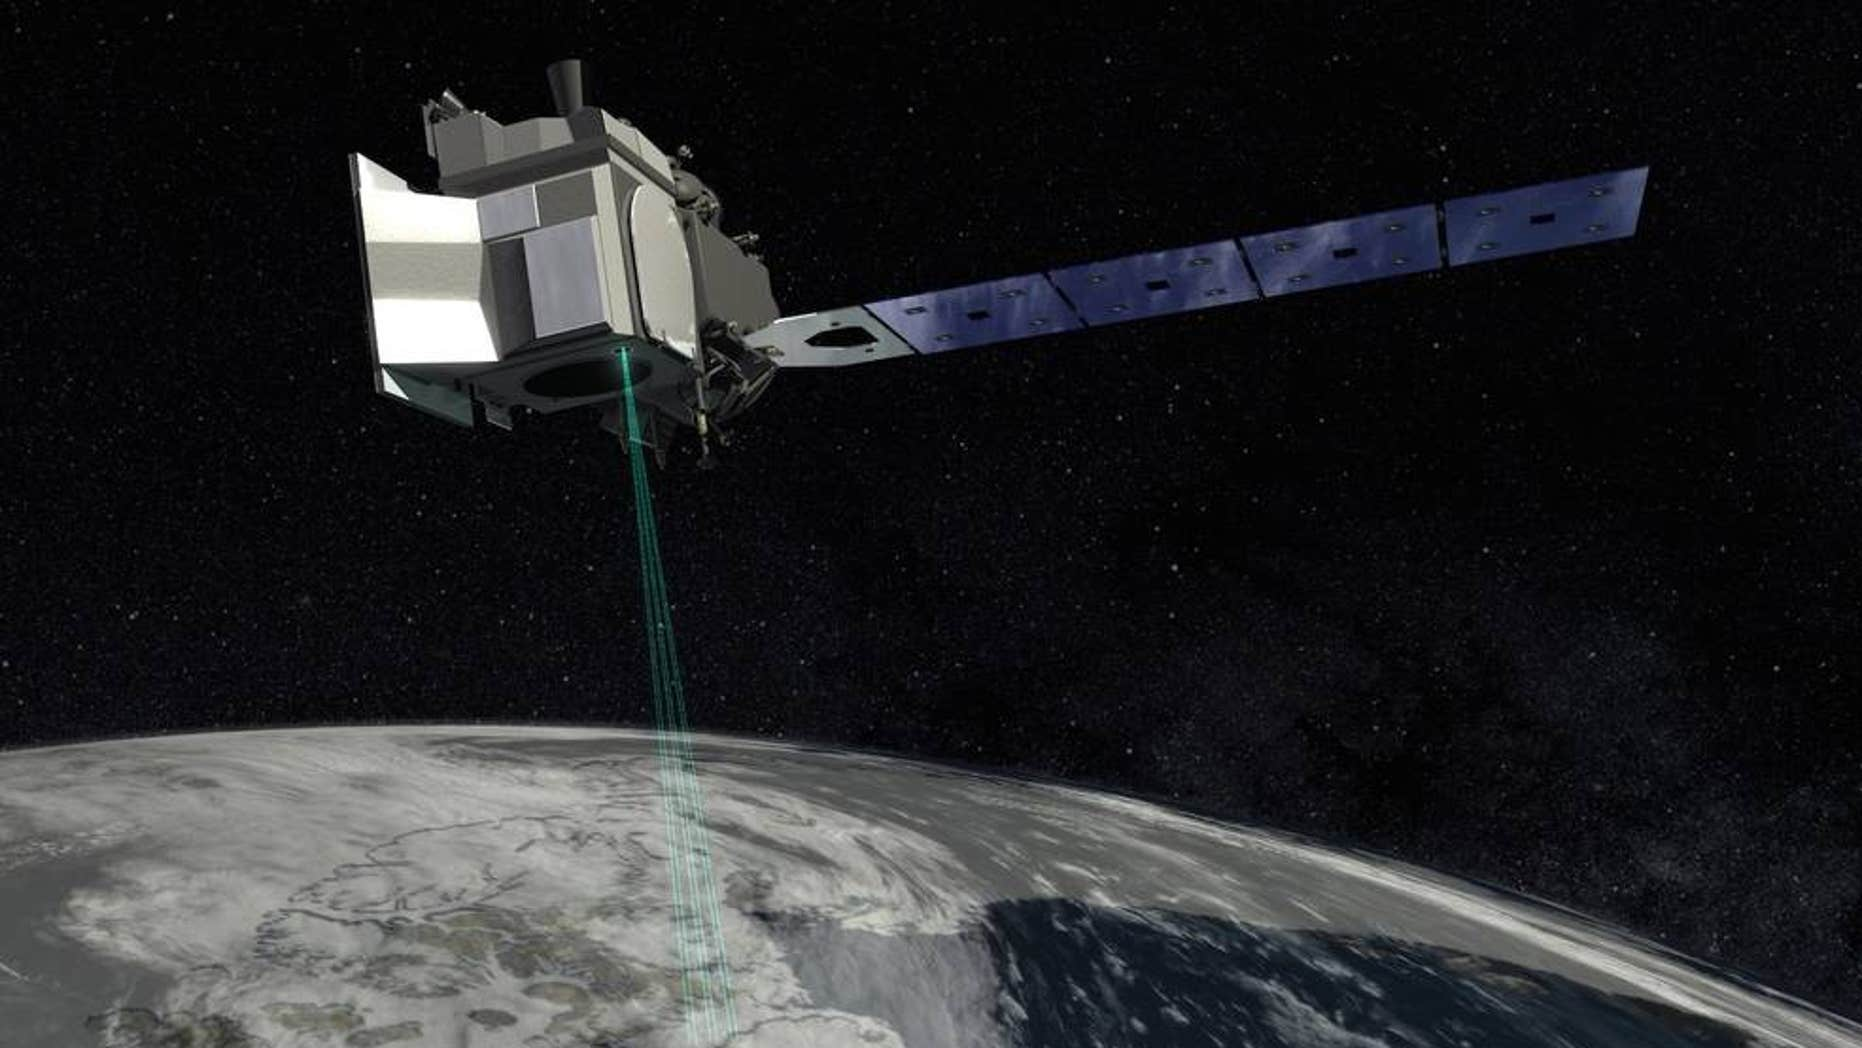 An artist's depiction of the ICESat-2 satellite at work studying Earth's ice sheets.